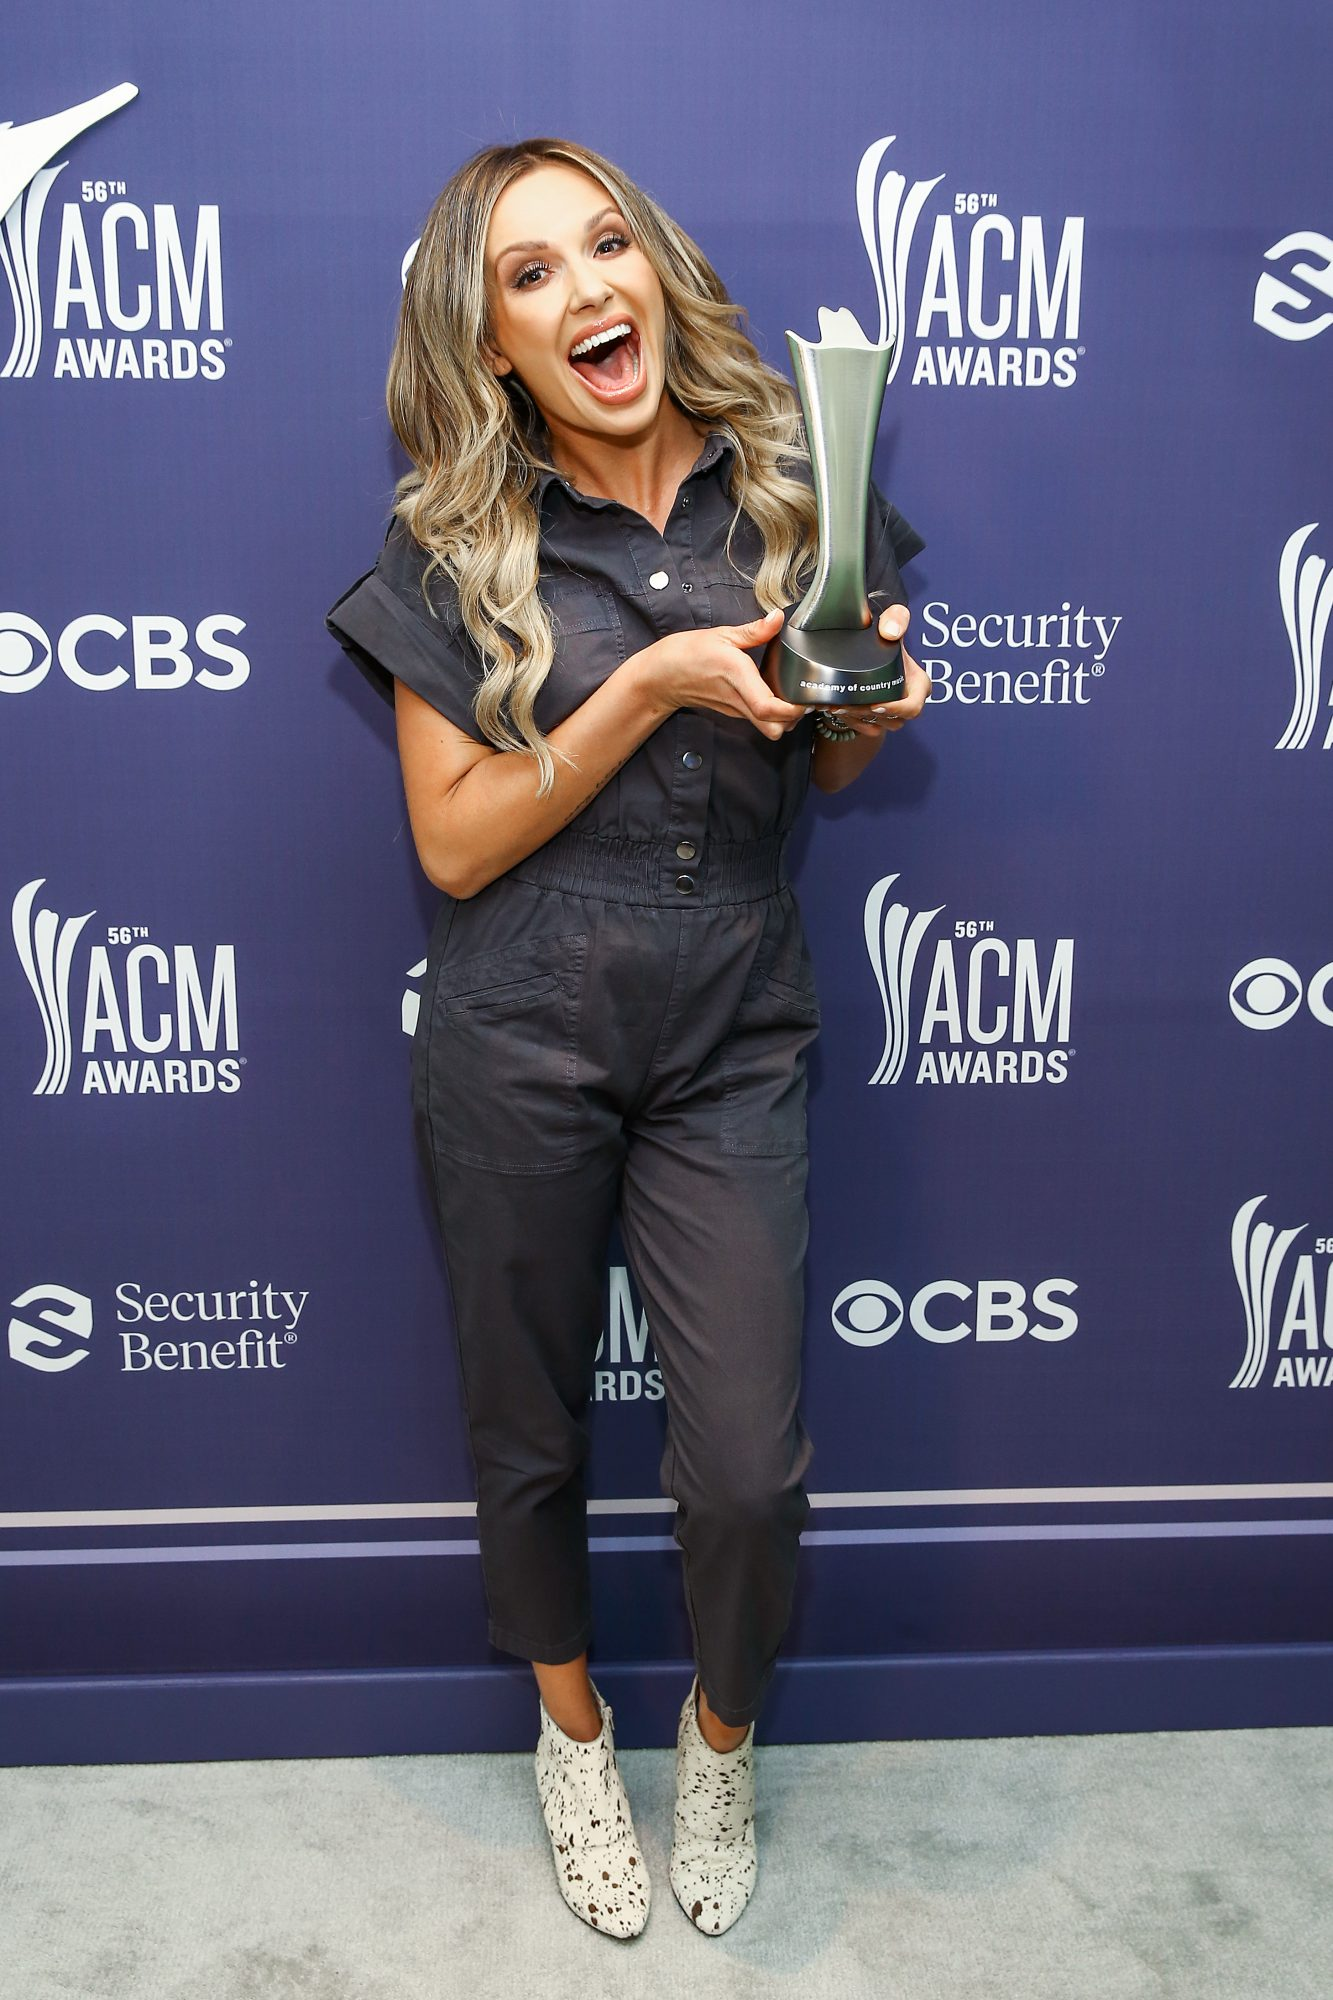 Carly Pearce and Lee Brice ACM Awards win